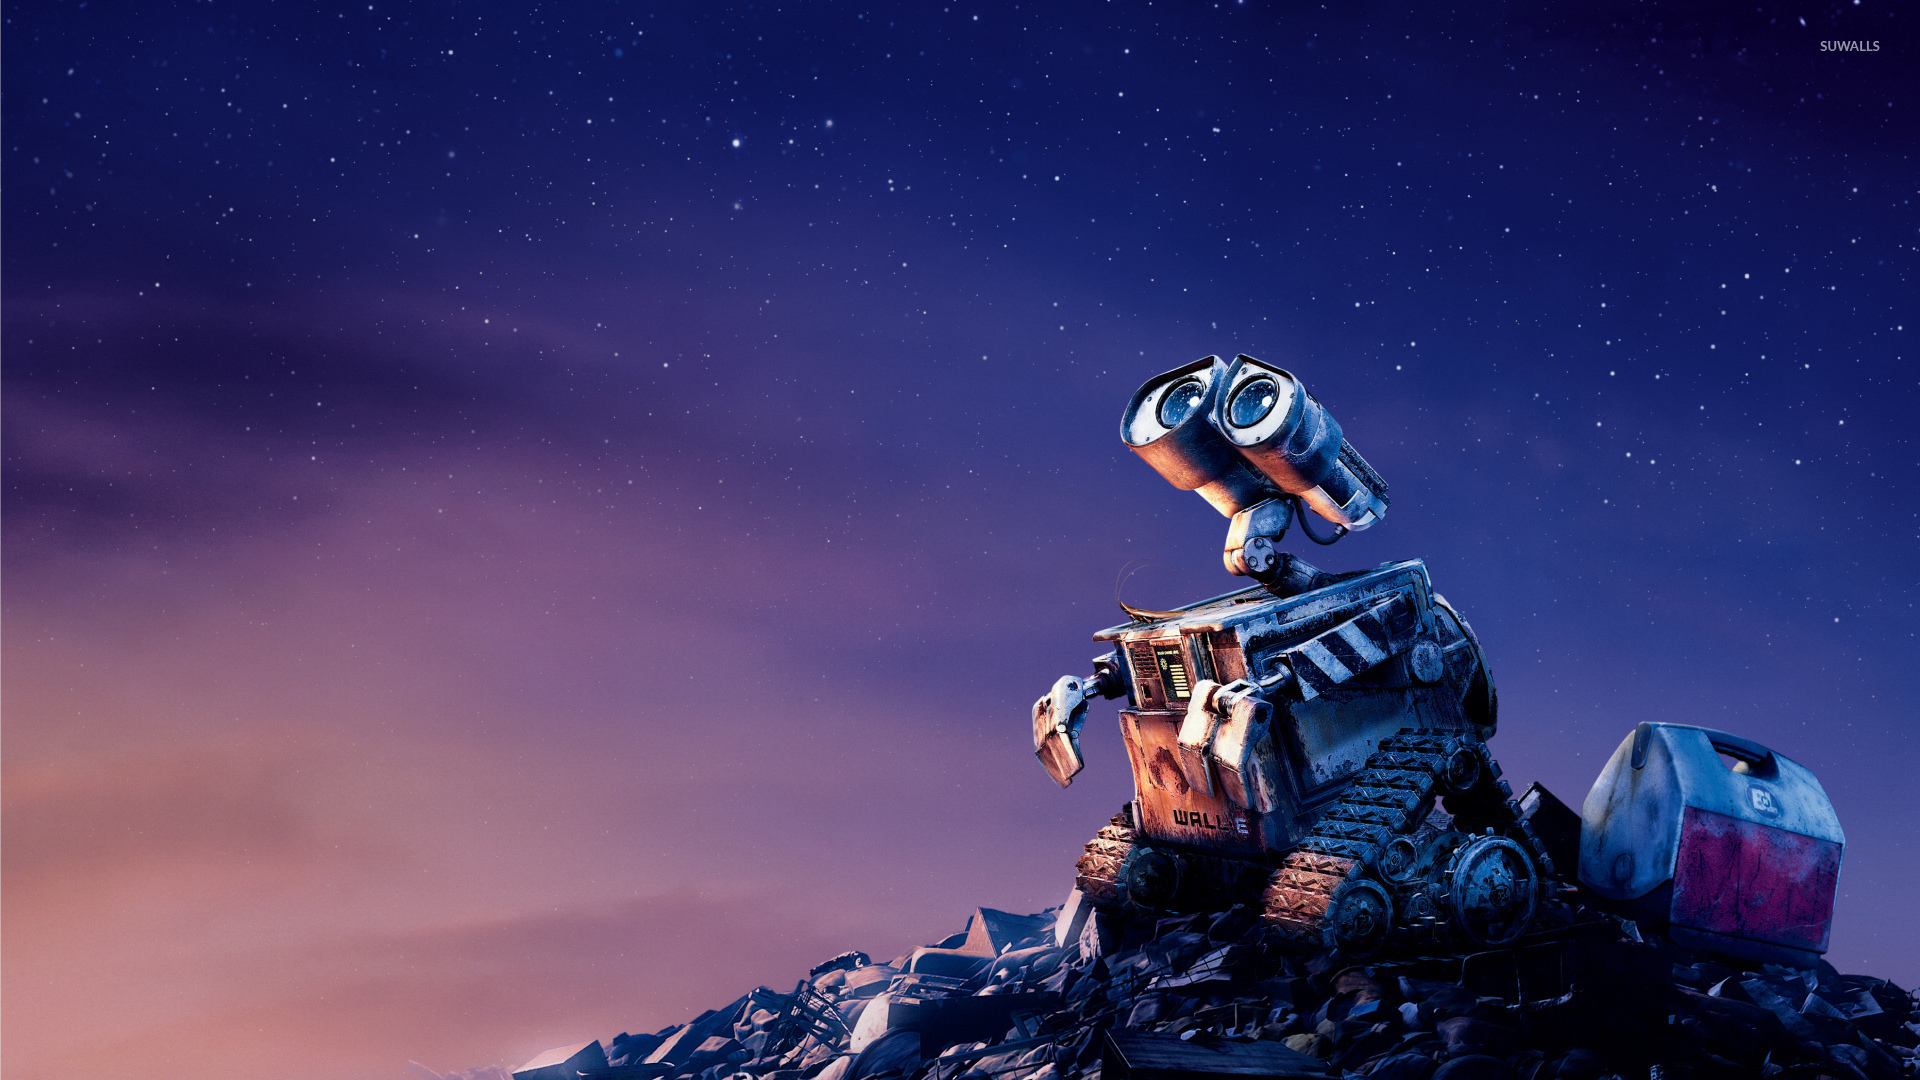 Wall e wallpaper cartoon wallpapers 8382 1 wall wallpaper